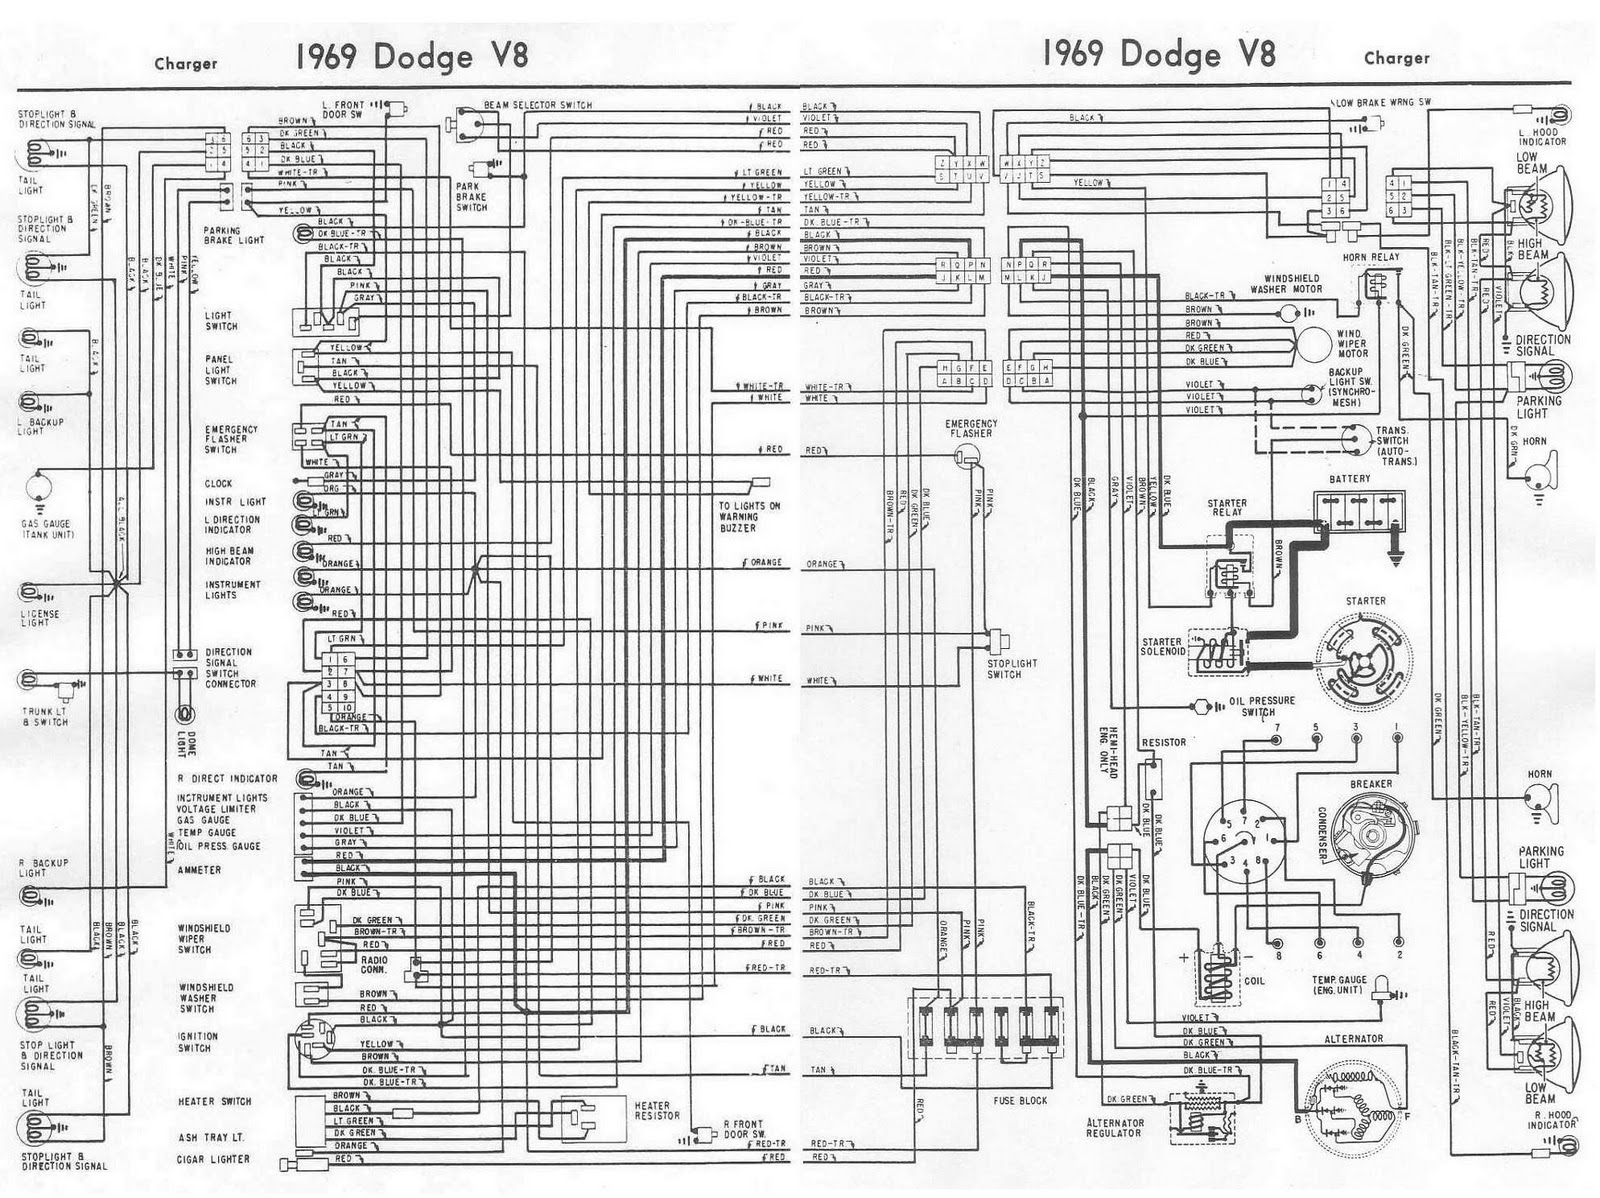 1962 Dodge Pickup Truck Wiring Diagram 99 Ford F 250 Powerstroke Fuse Box Diagram For Wiring Diagram Schematics